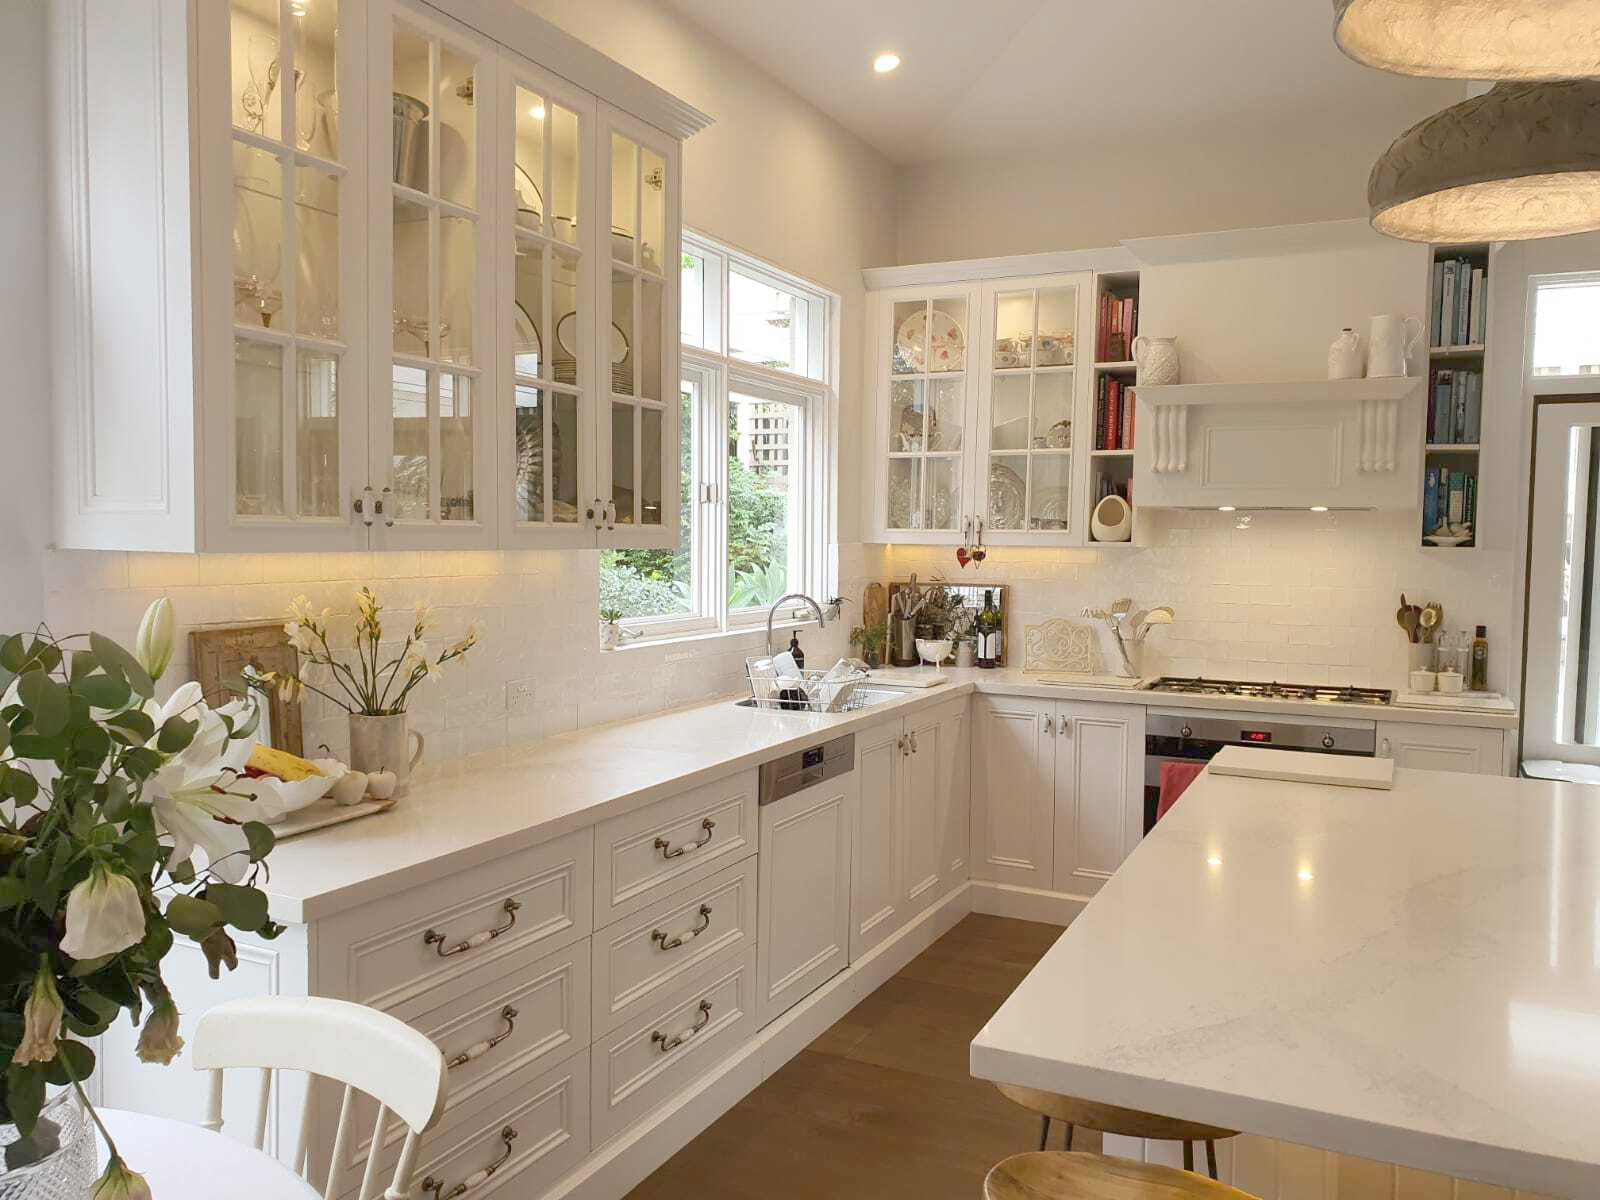 Kitchens Sydney   Laundry & Kitchen Cabinetry Manufacturers